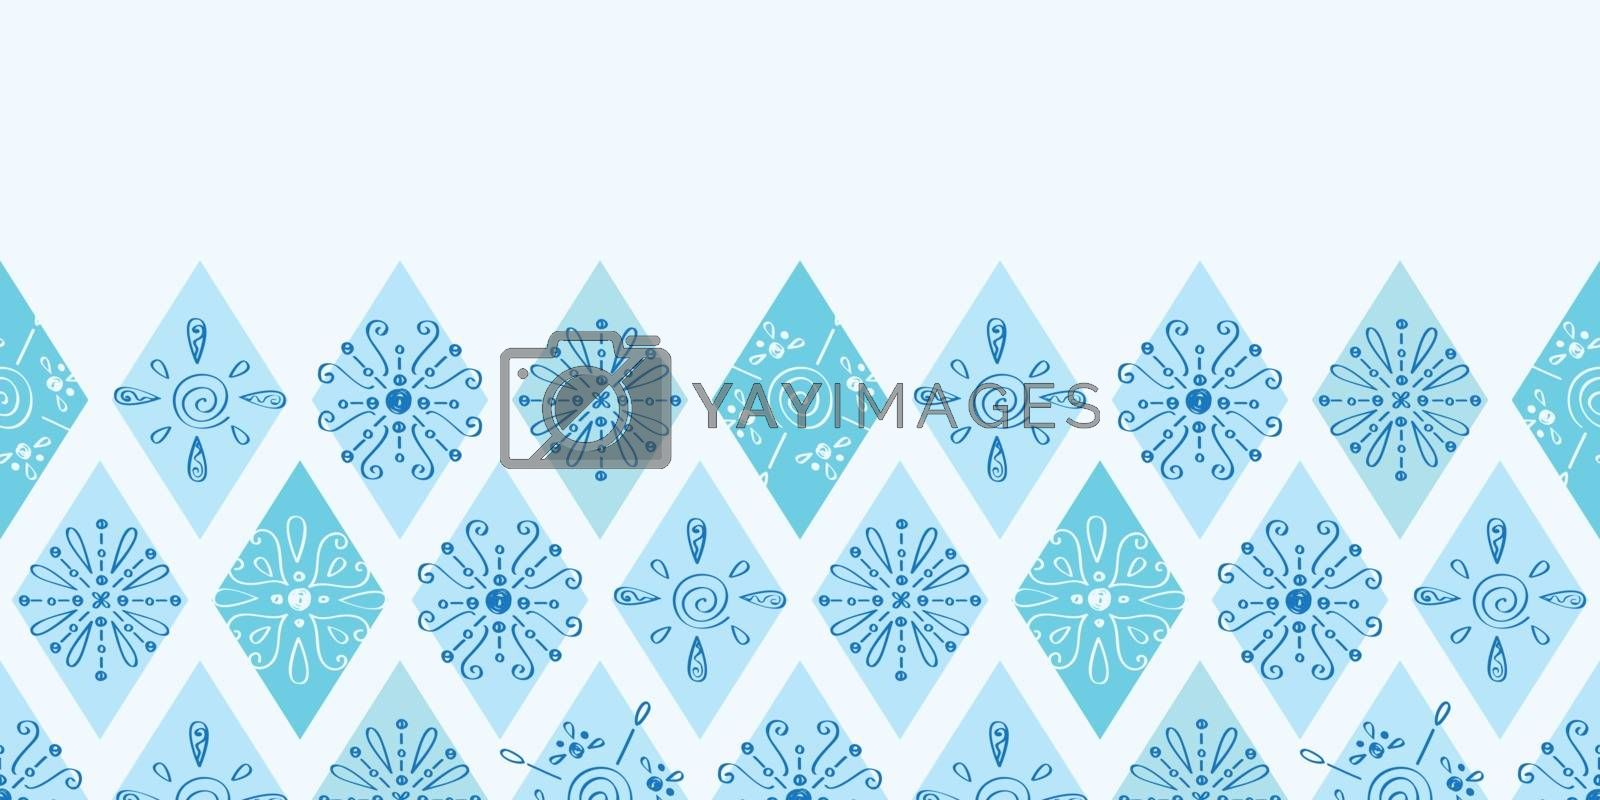 Vector abstract blue doodle rhombus horizontal border seamless pattern background graphic design